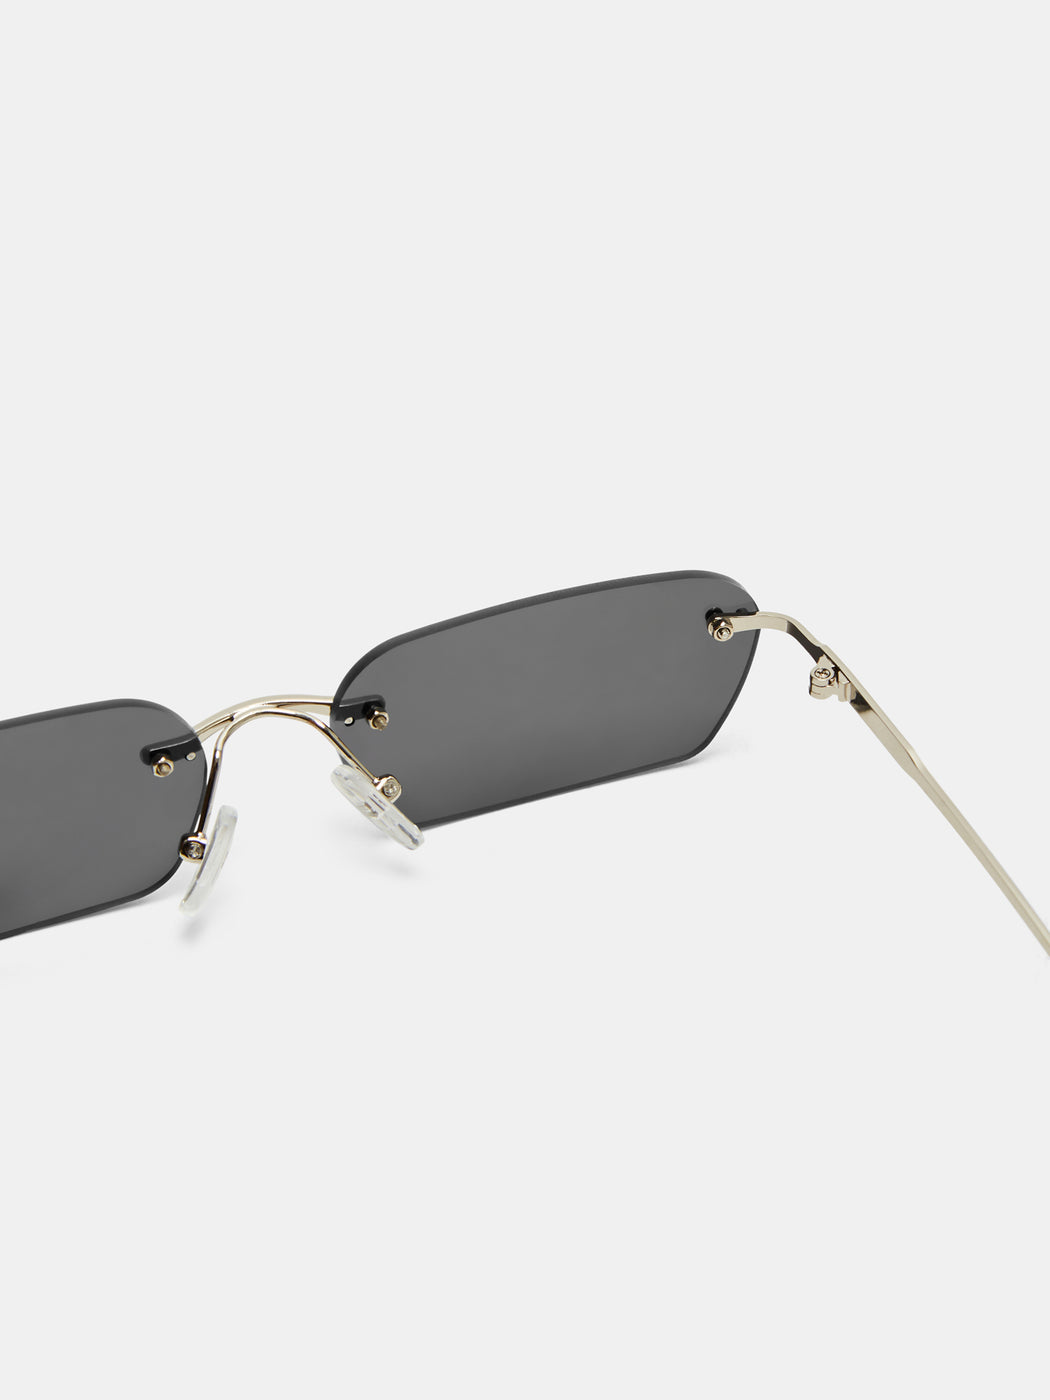 Less Rim Sunglasses